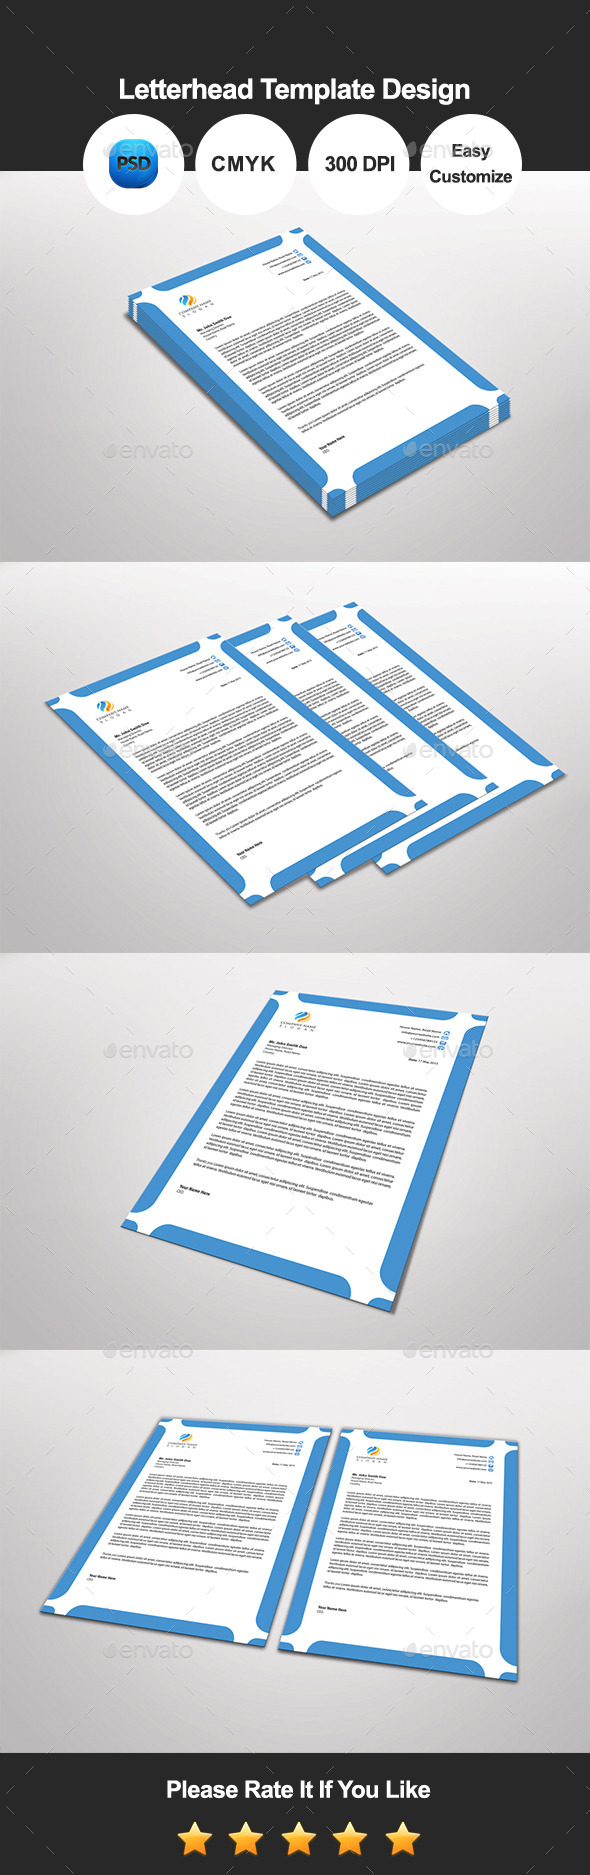 GraphicRiver Jinjil Letterhead Template Design 11843864